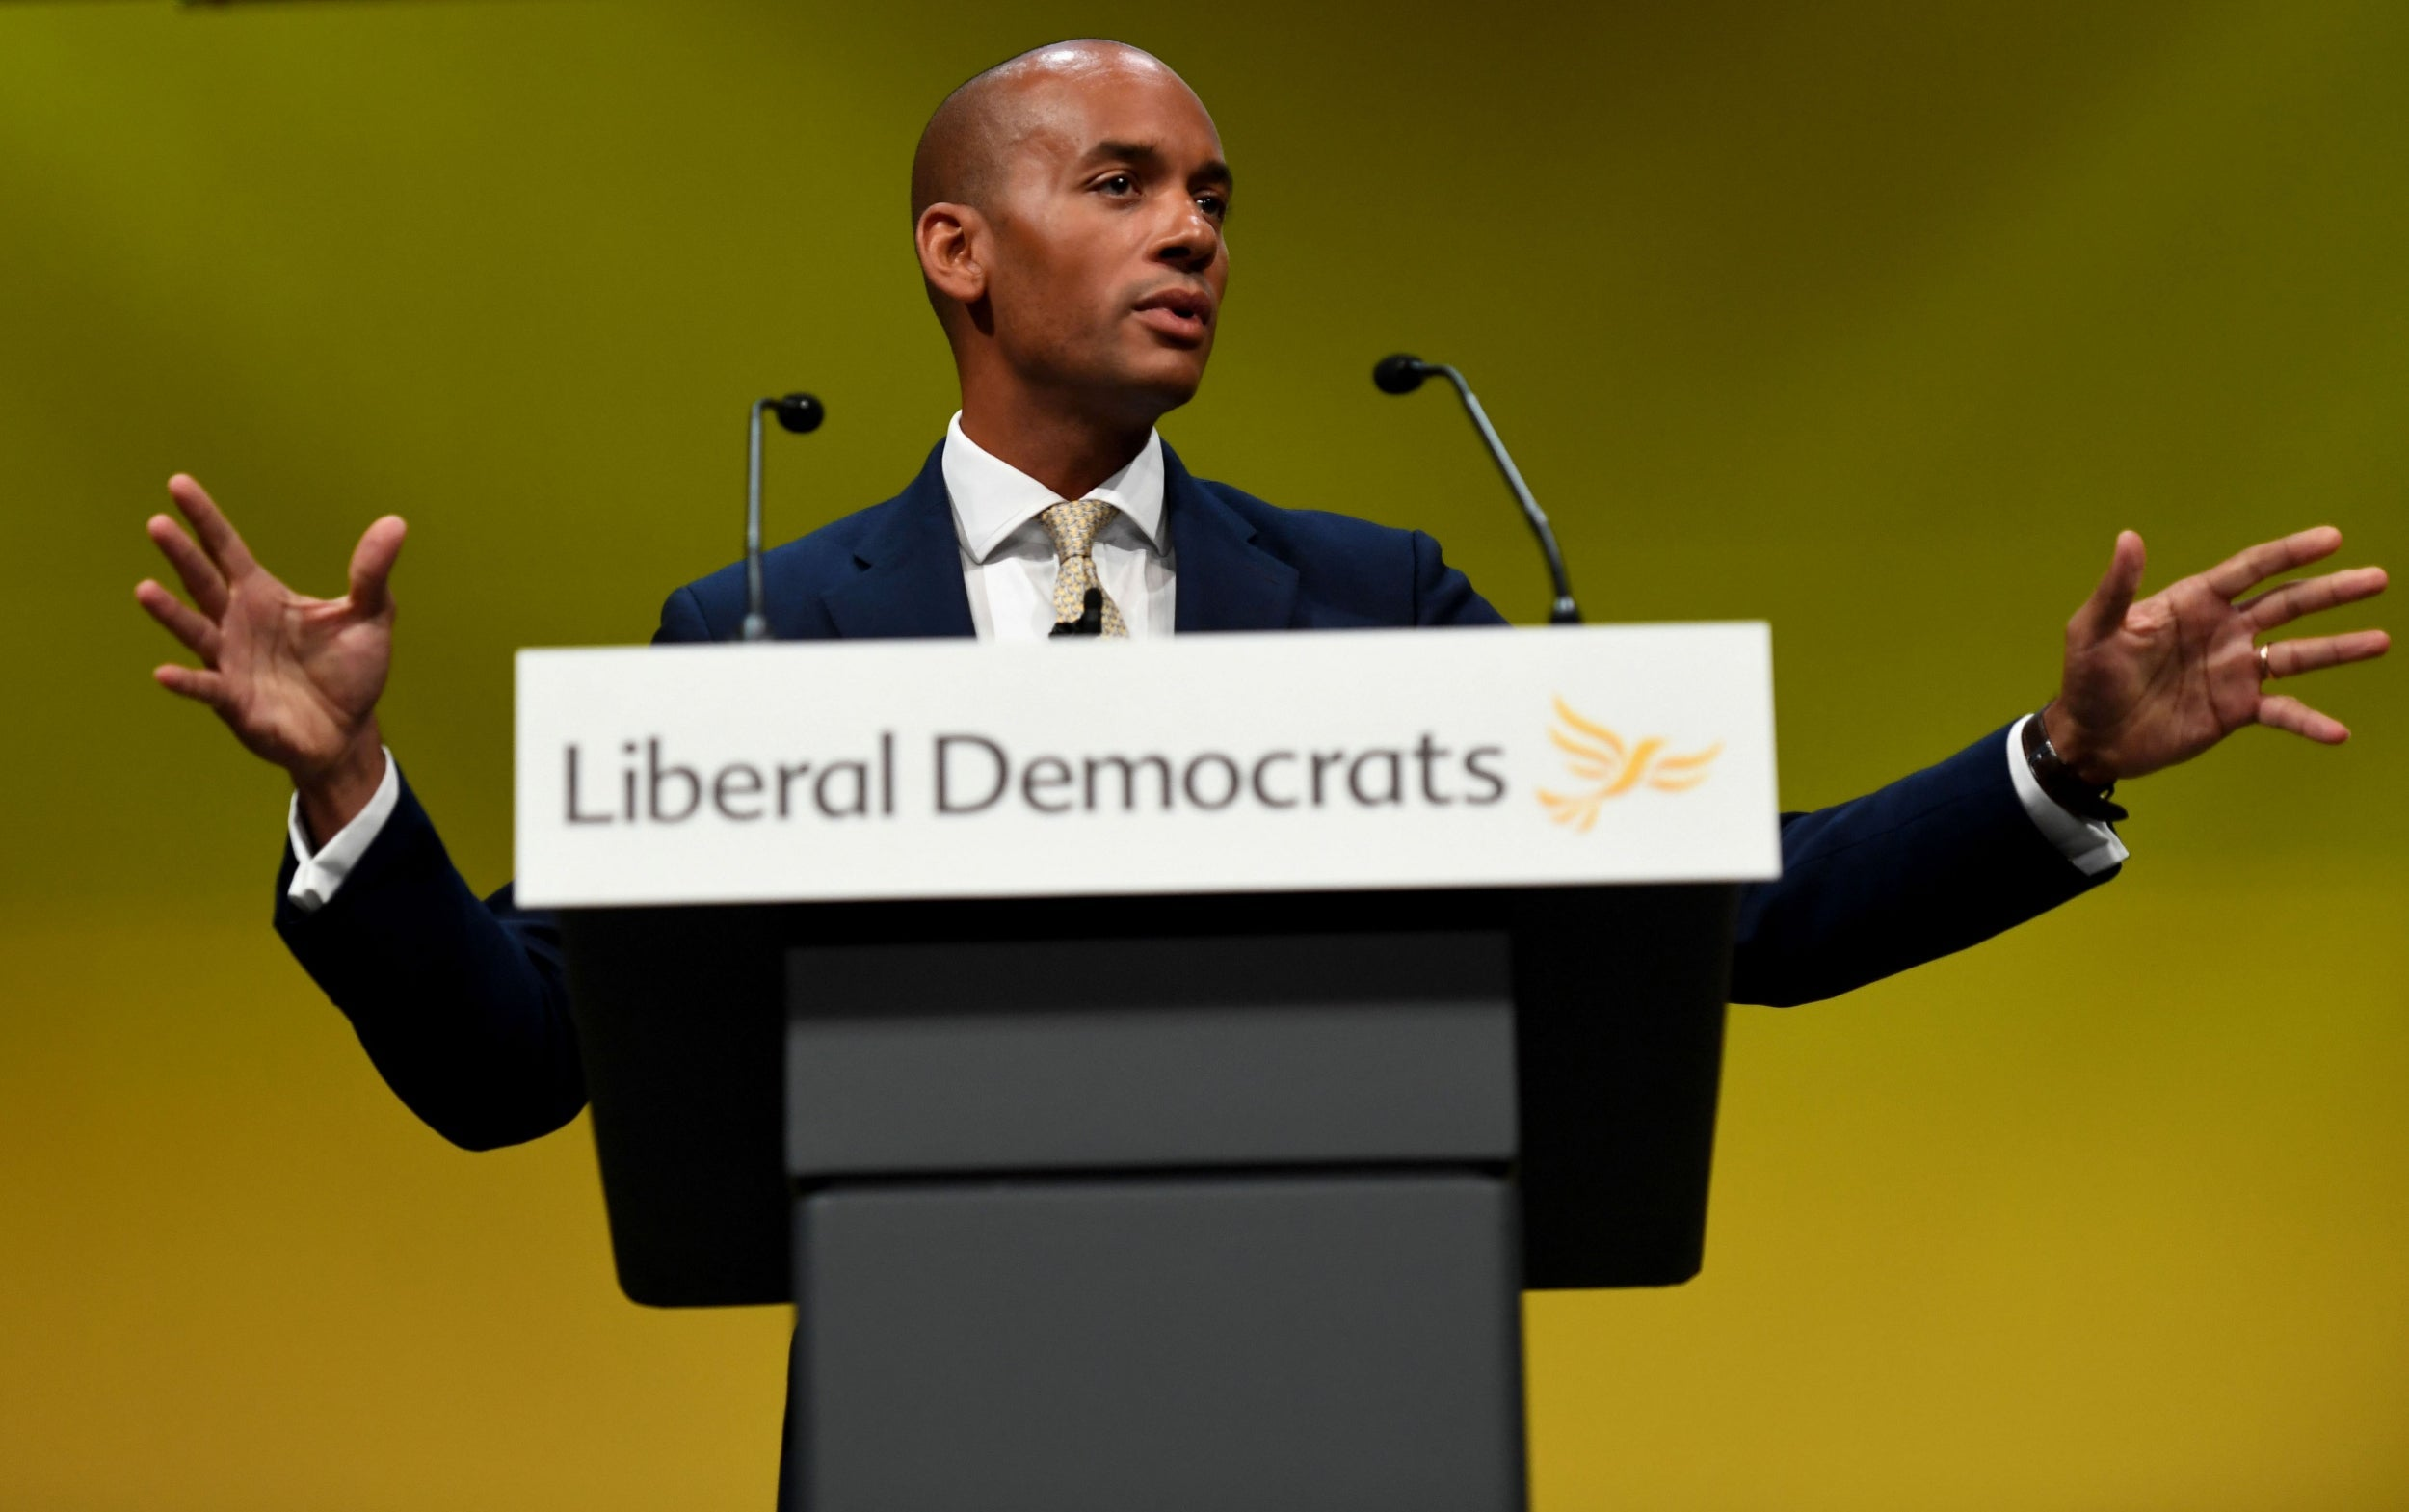 Lib Dems could win up to 200 seats at next election, Chuka Umunna claims